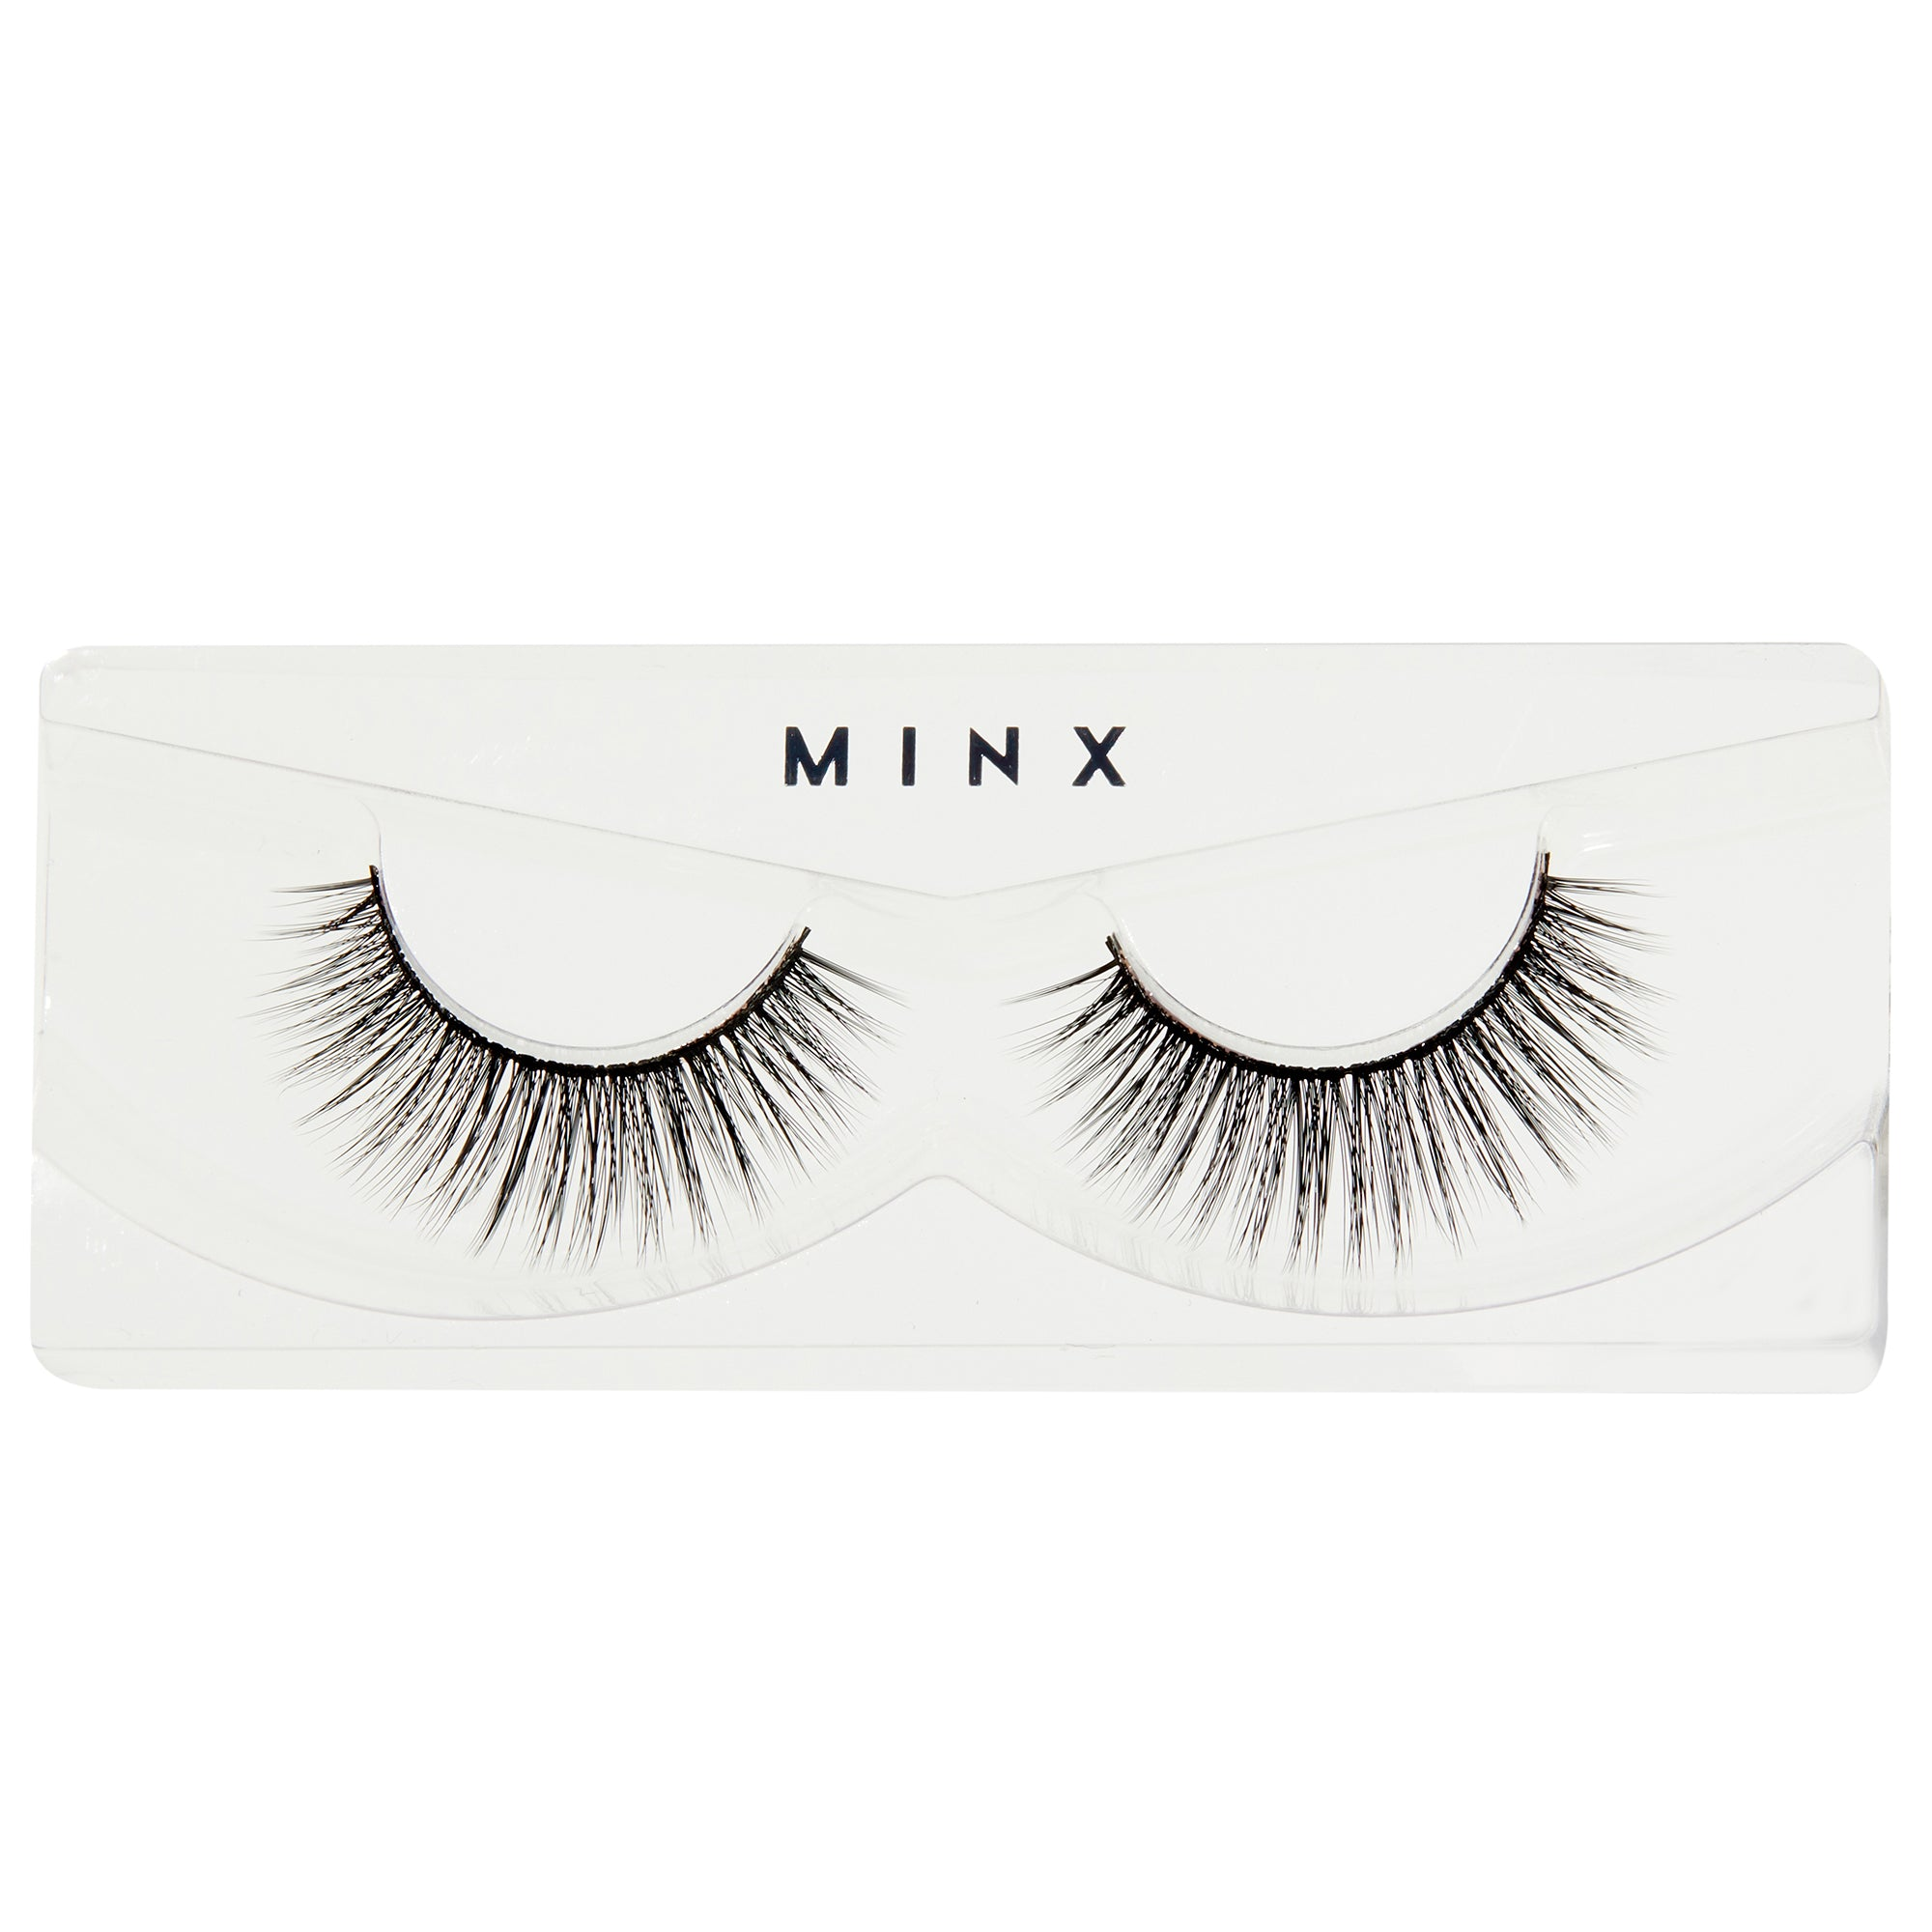 Minx Falsies Faux Lashes by Colourpop #4